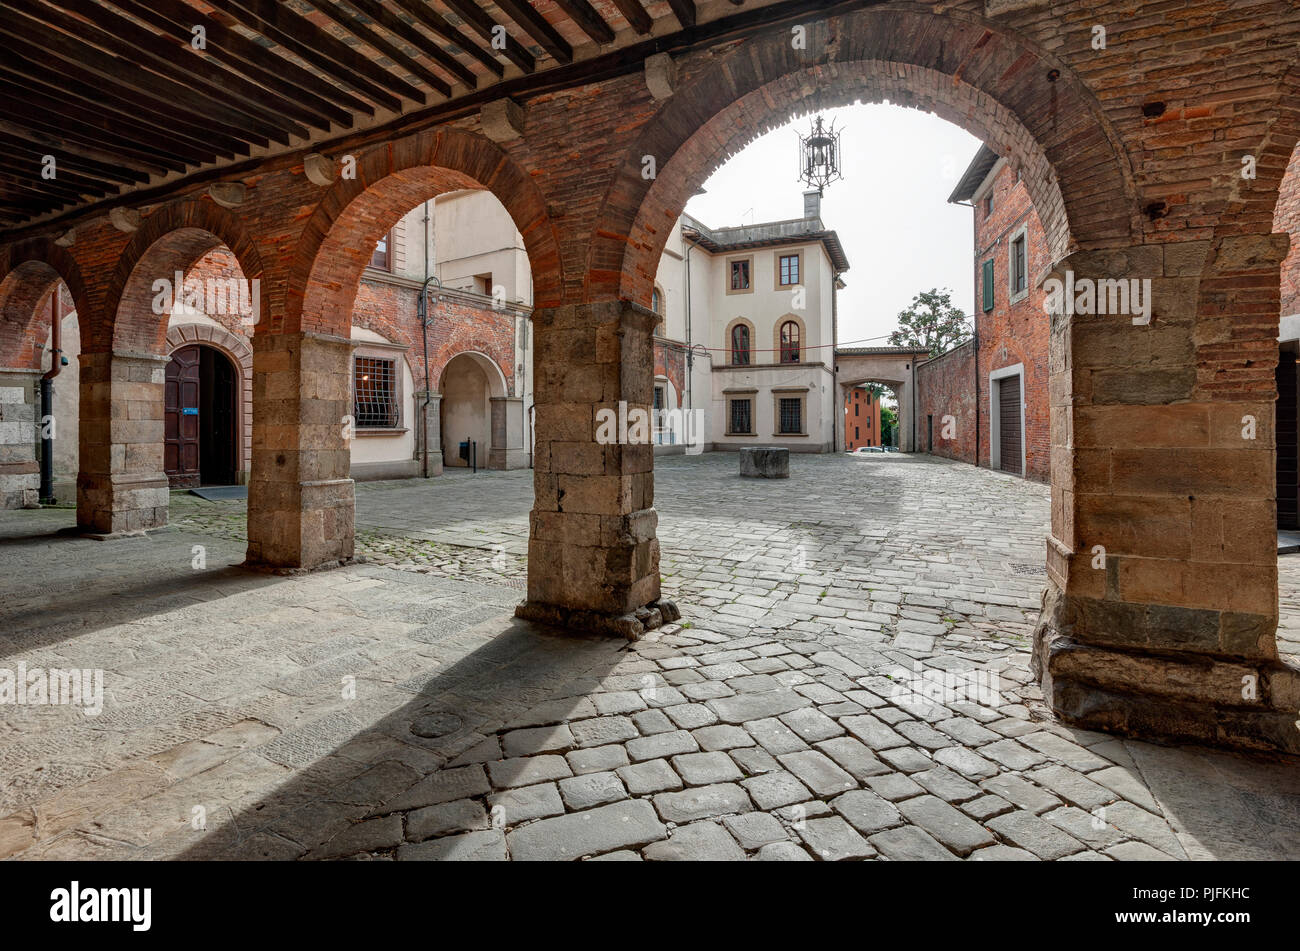 The lower loggia of Piazza Ospitalieri, in the old town of Altopascio, Lucca, Italy - Stock Image